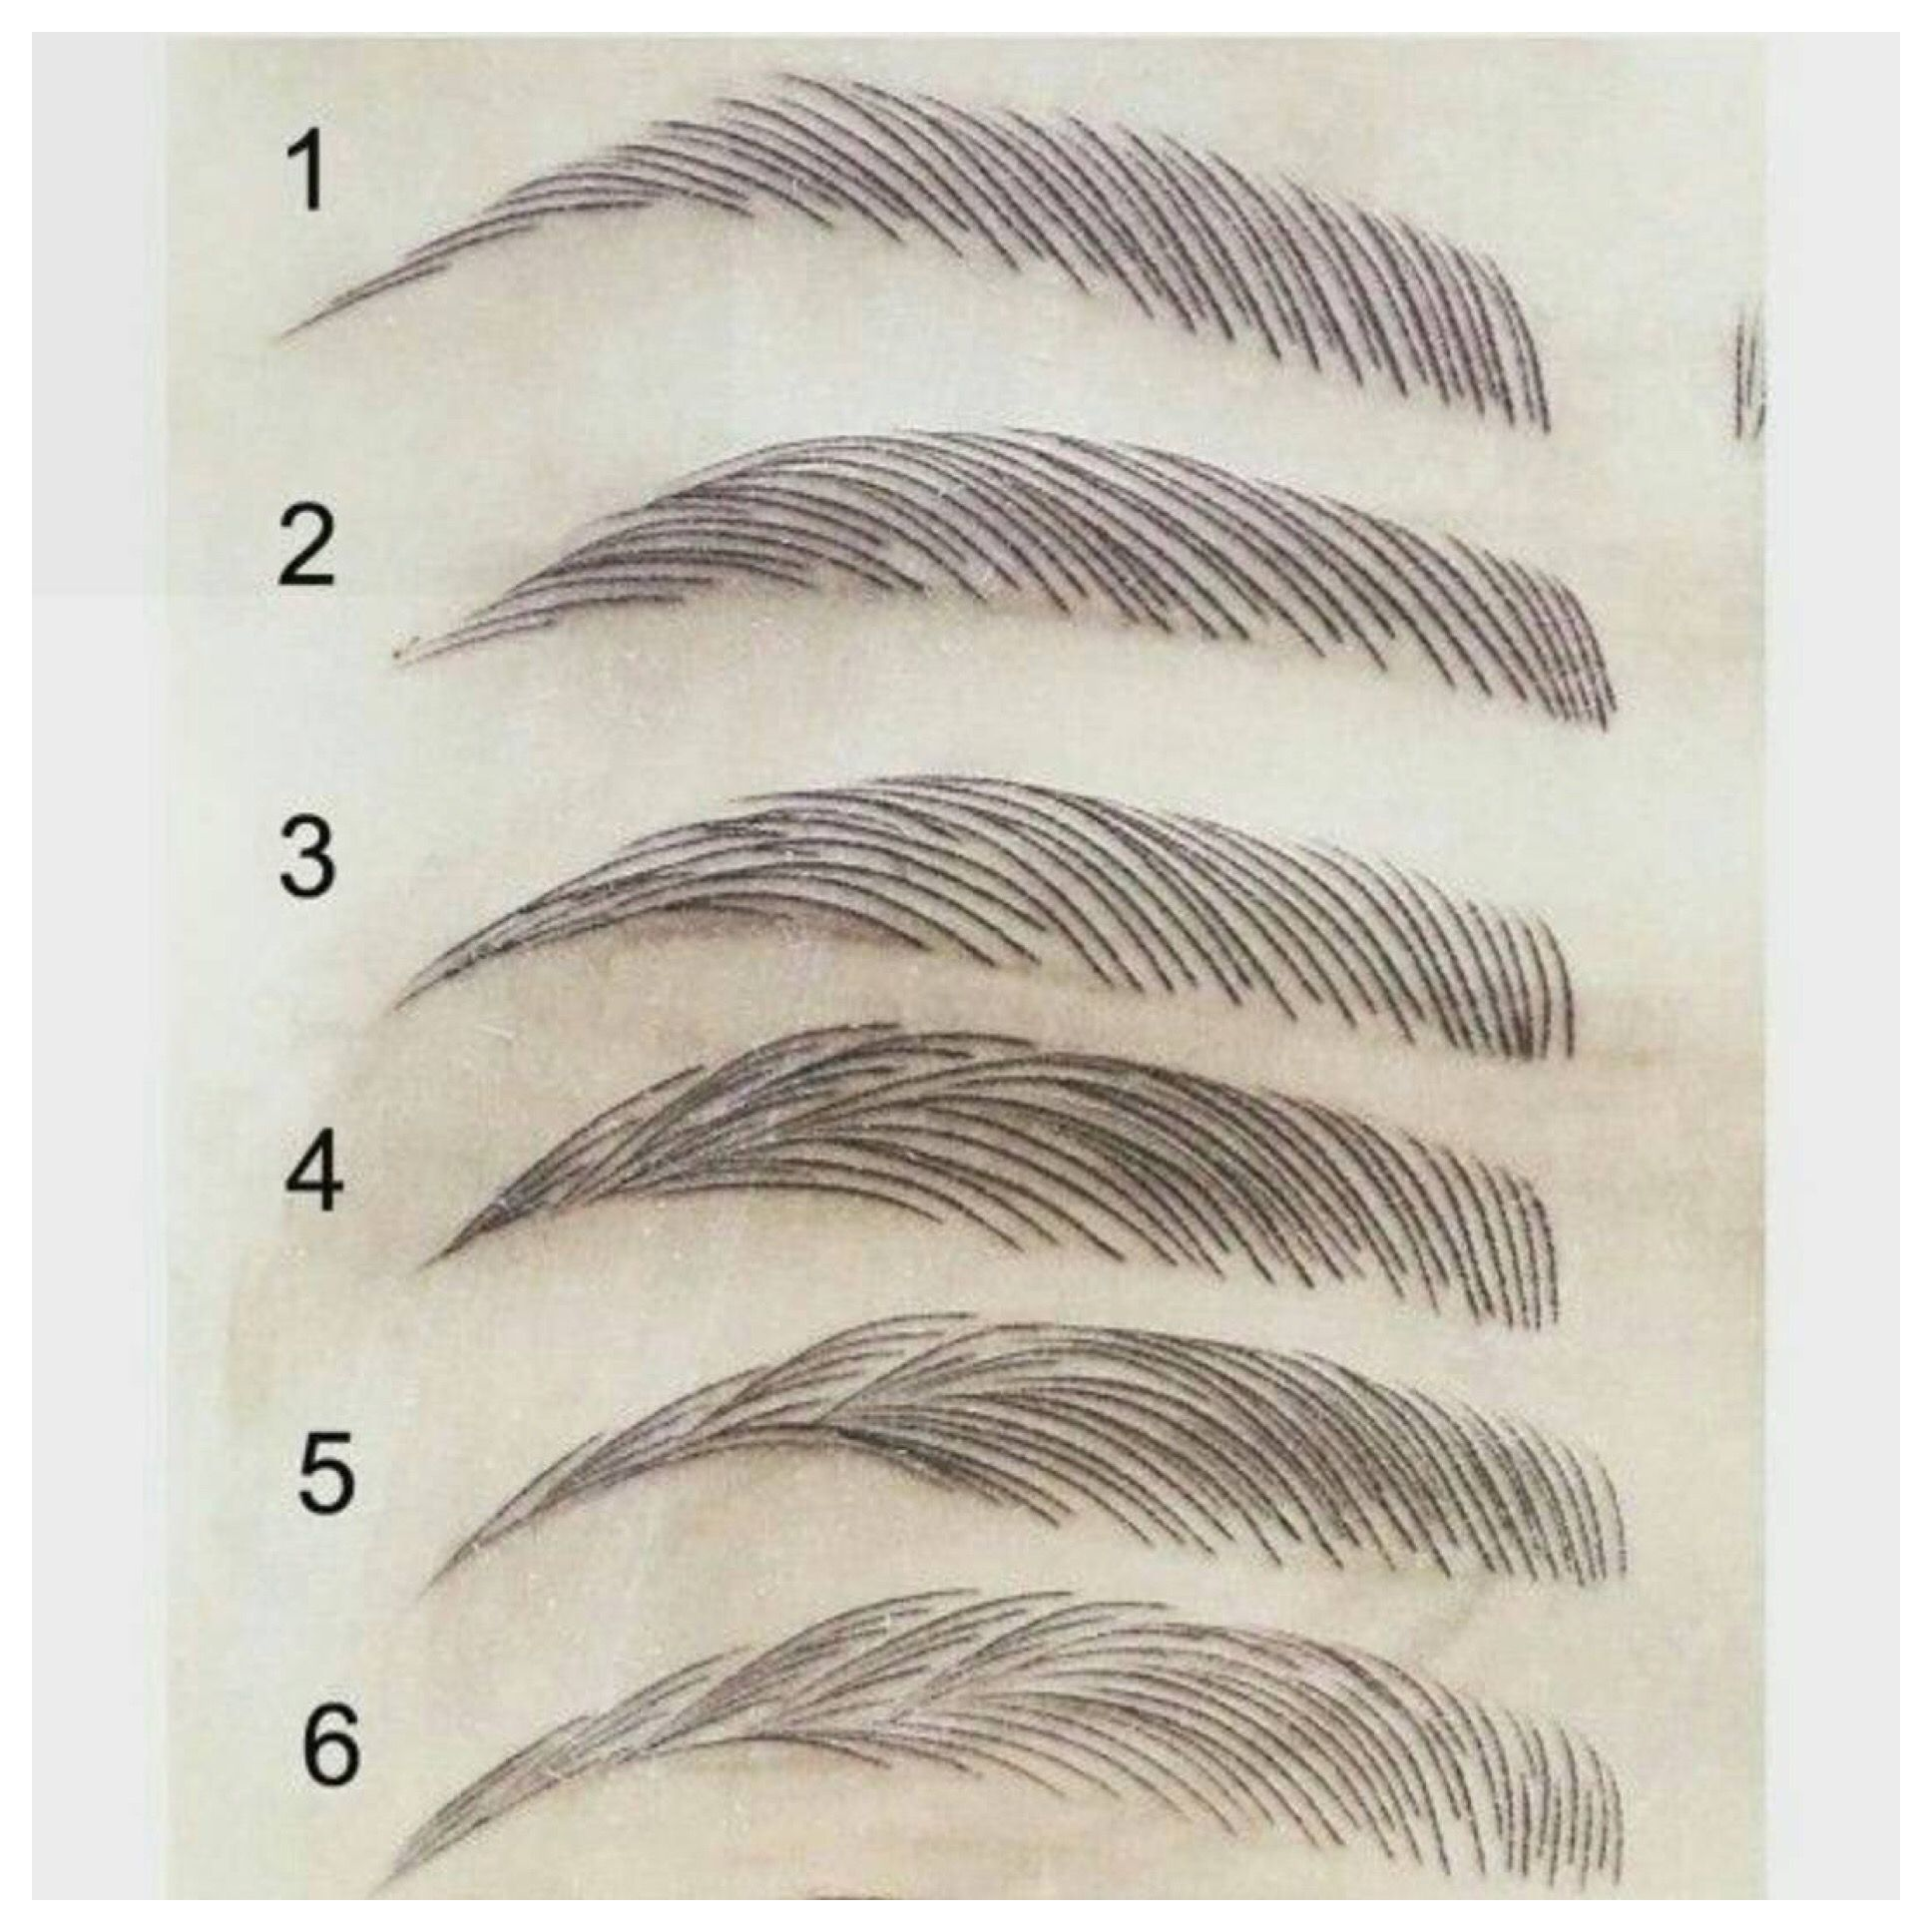 Microblading Strokes And Variations How To Draw Eyebrows Microblading Microblading Eyebrows